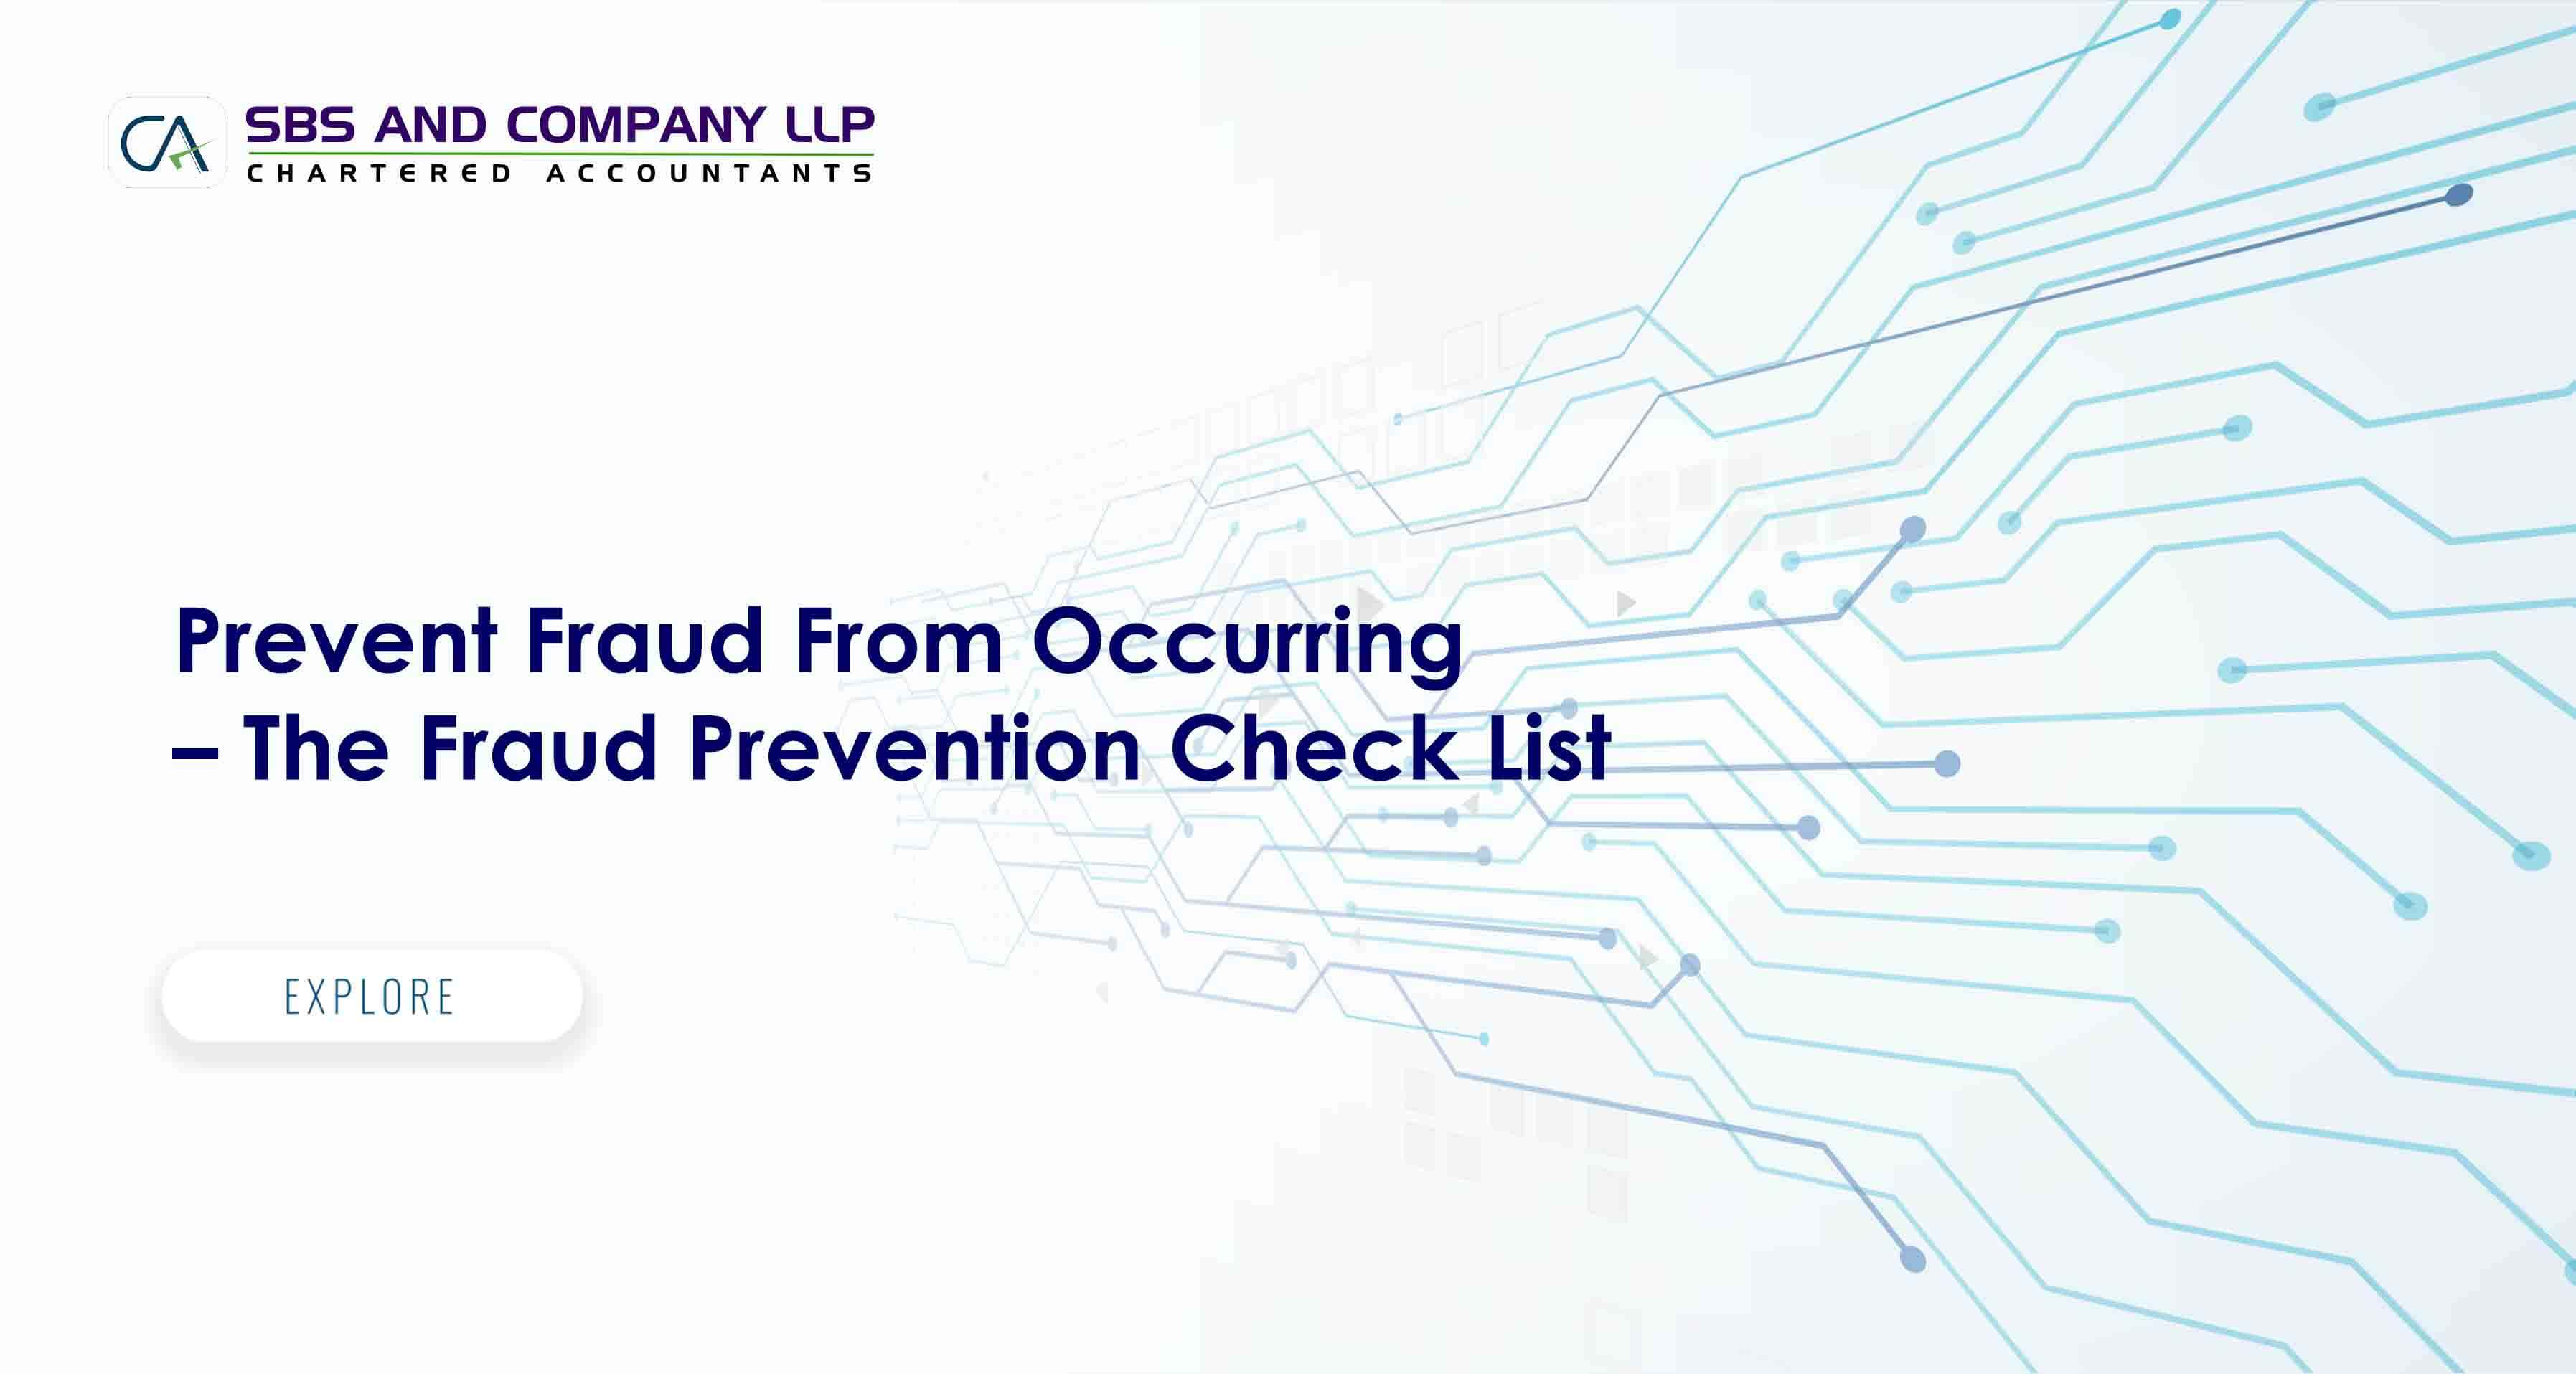 Prevent Fraud From Occurring - The Fraud Prevention Check List